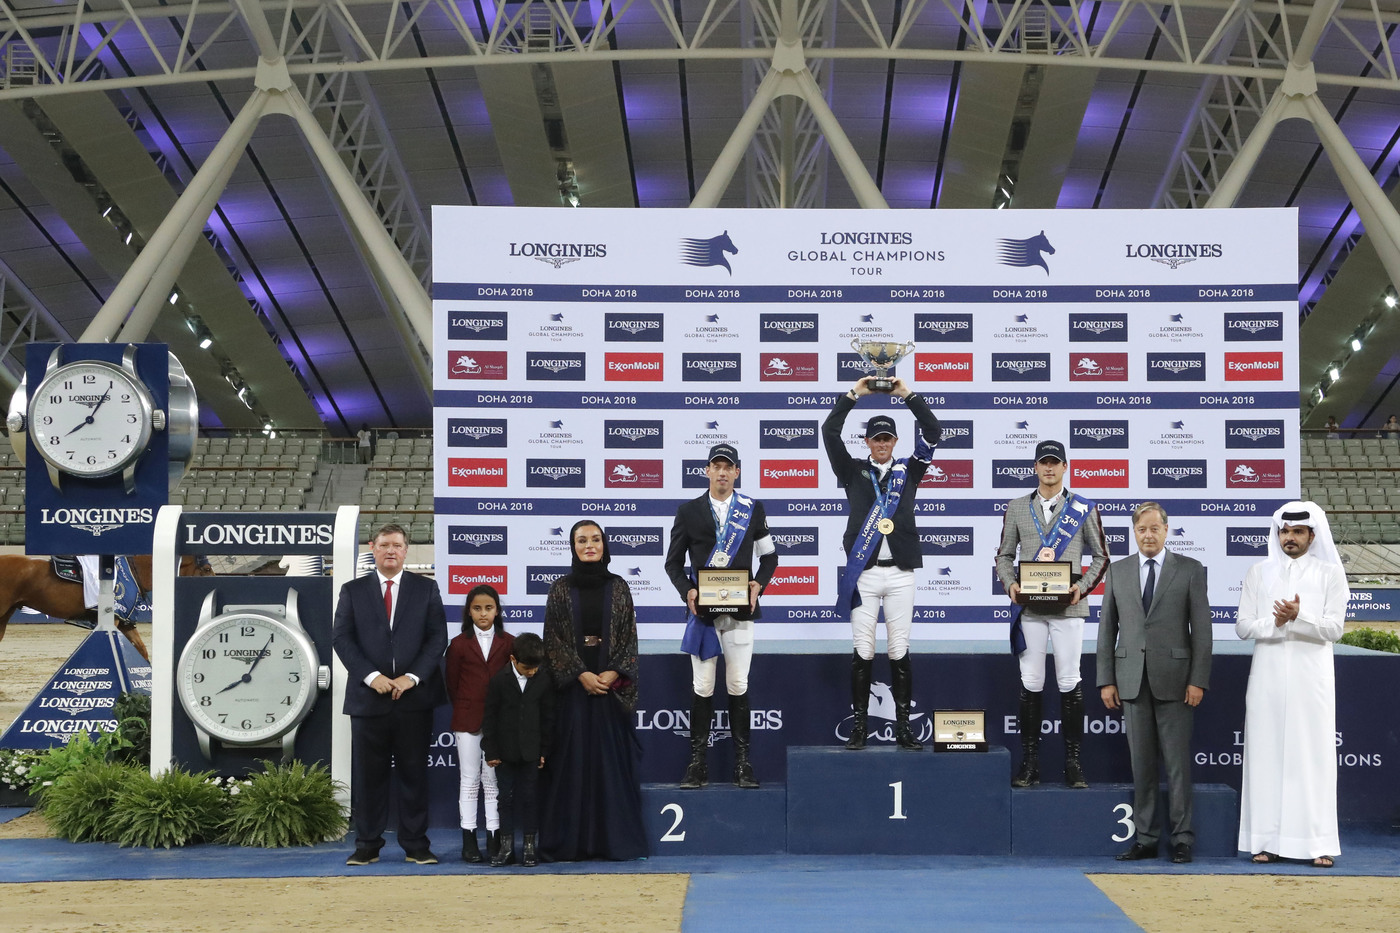 Longines Show Jumping Event: Ben Maher claimed stunning victory at the 2018 Longines Global Champions Tour of Doha 3